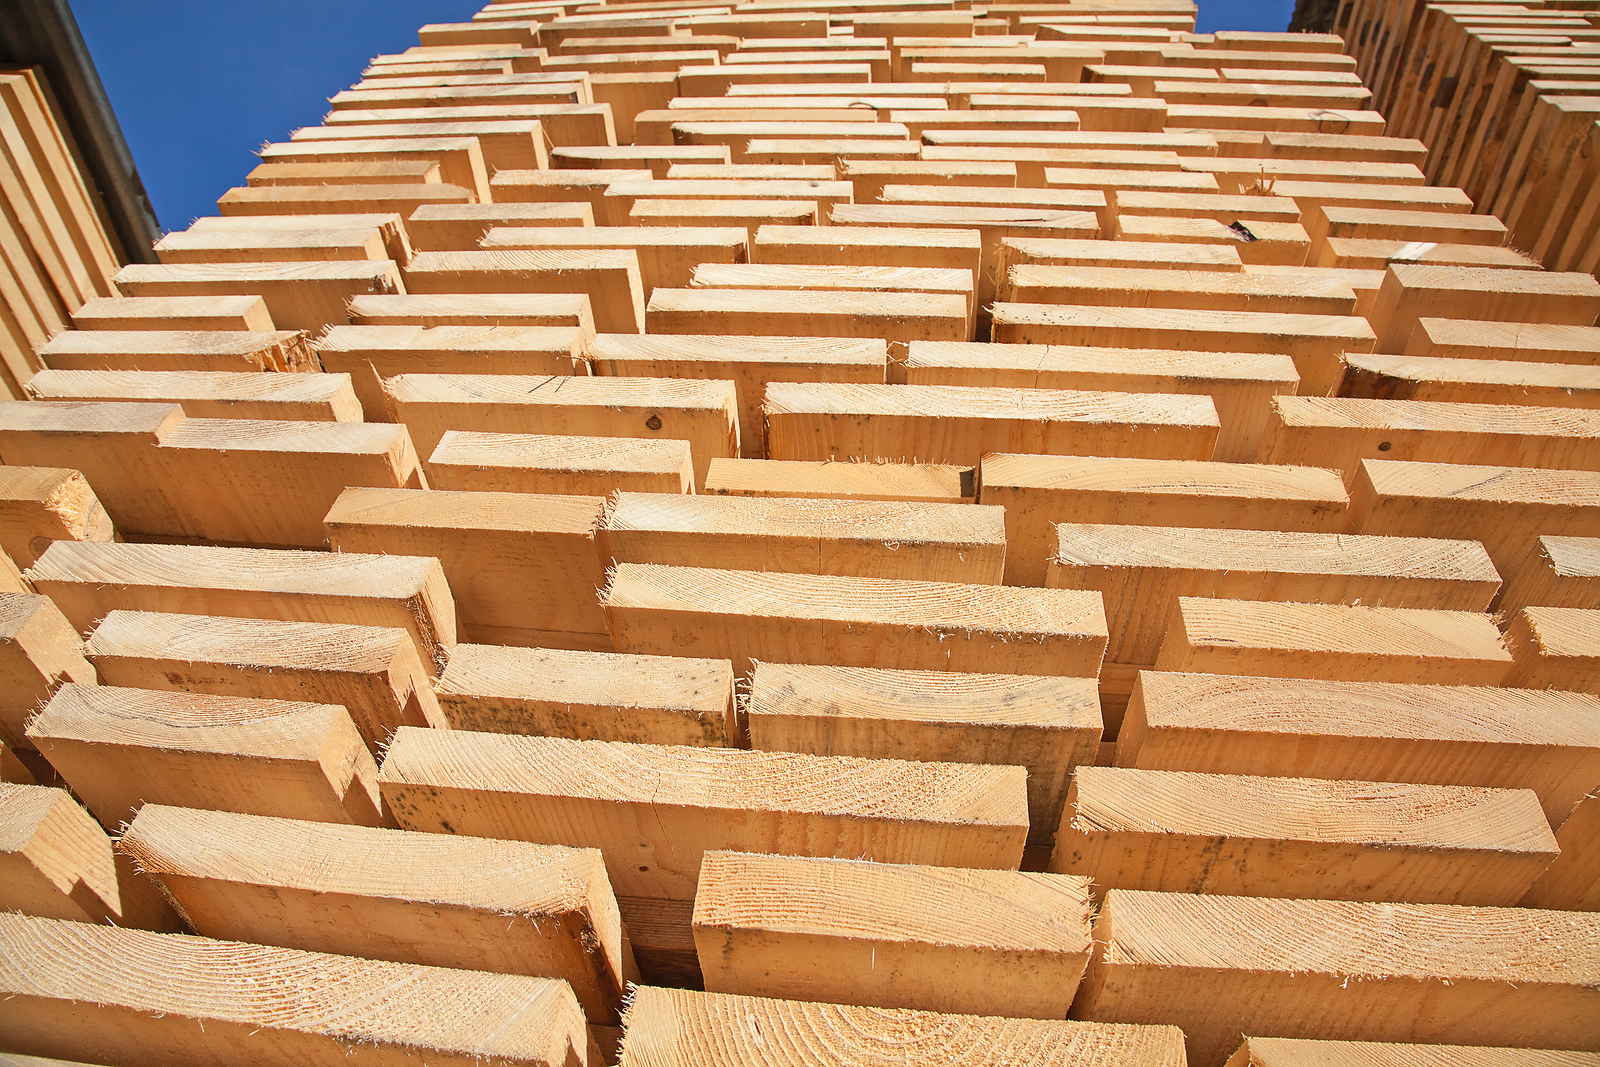 bigstock-Stack-of-new-wooden-studs-at